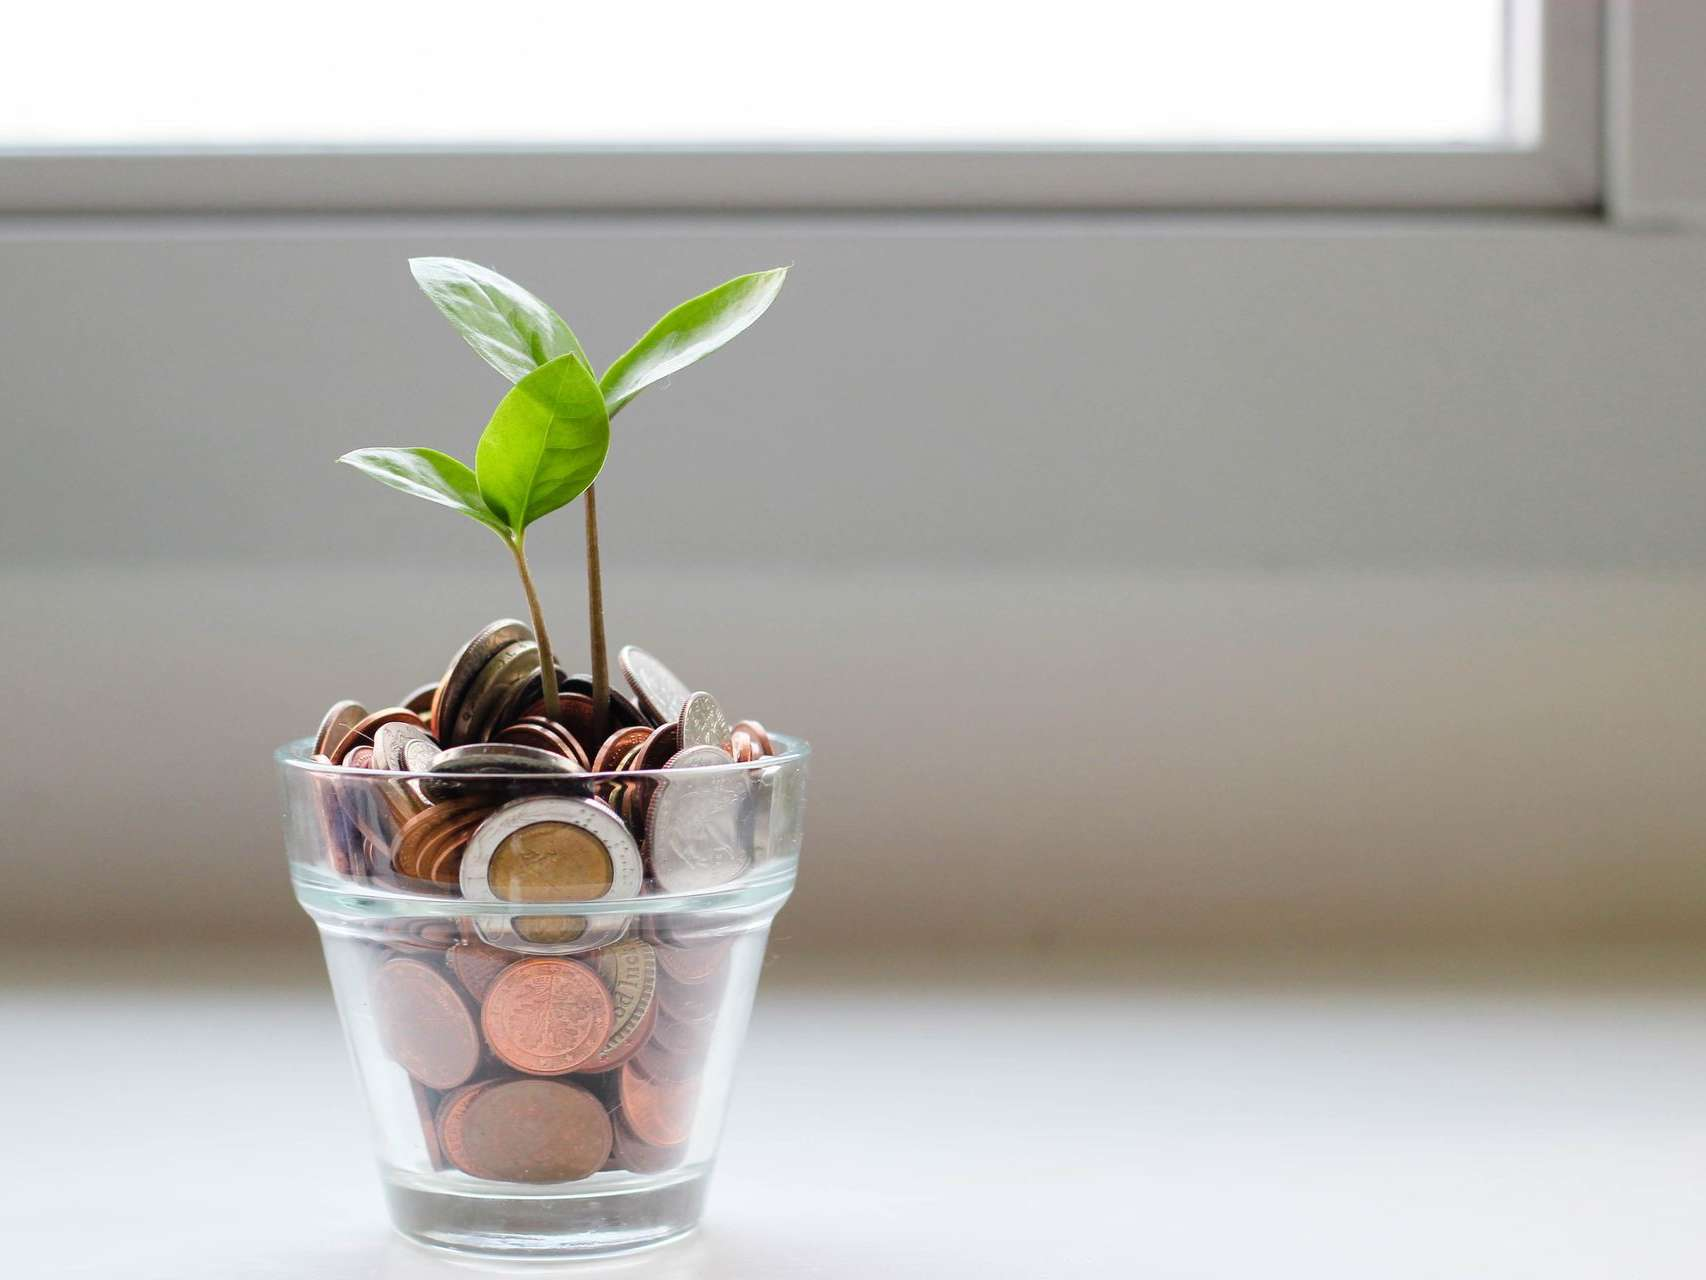 Plant growing out of a glass filled with coins